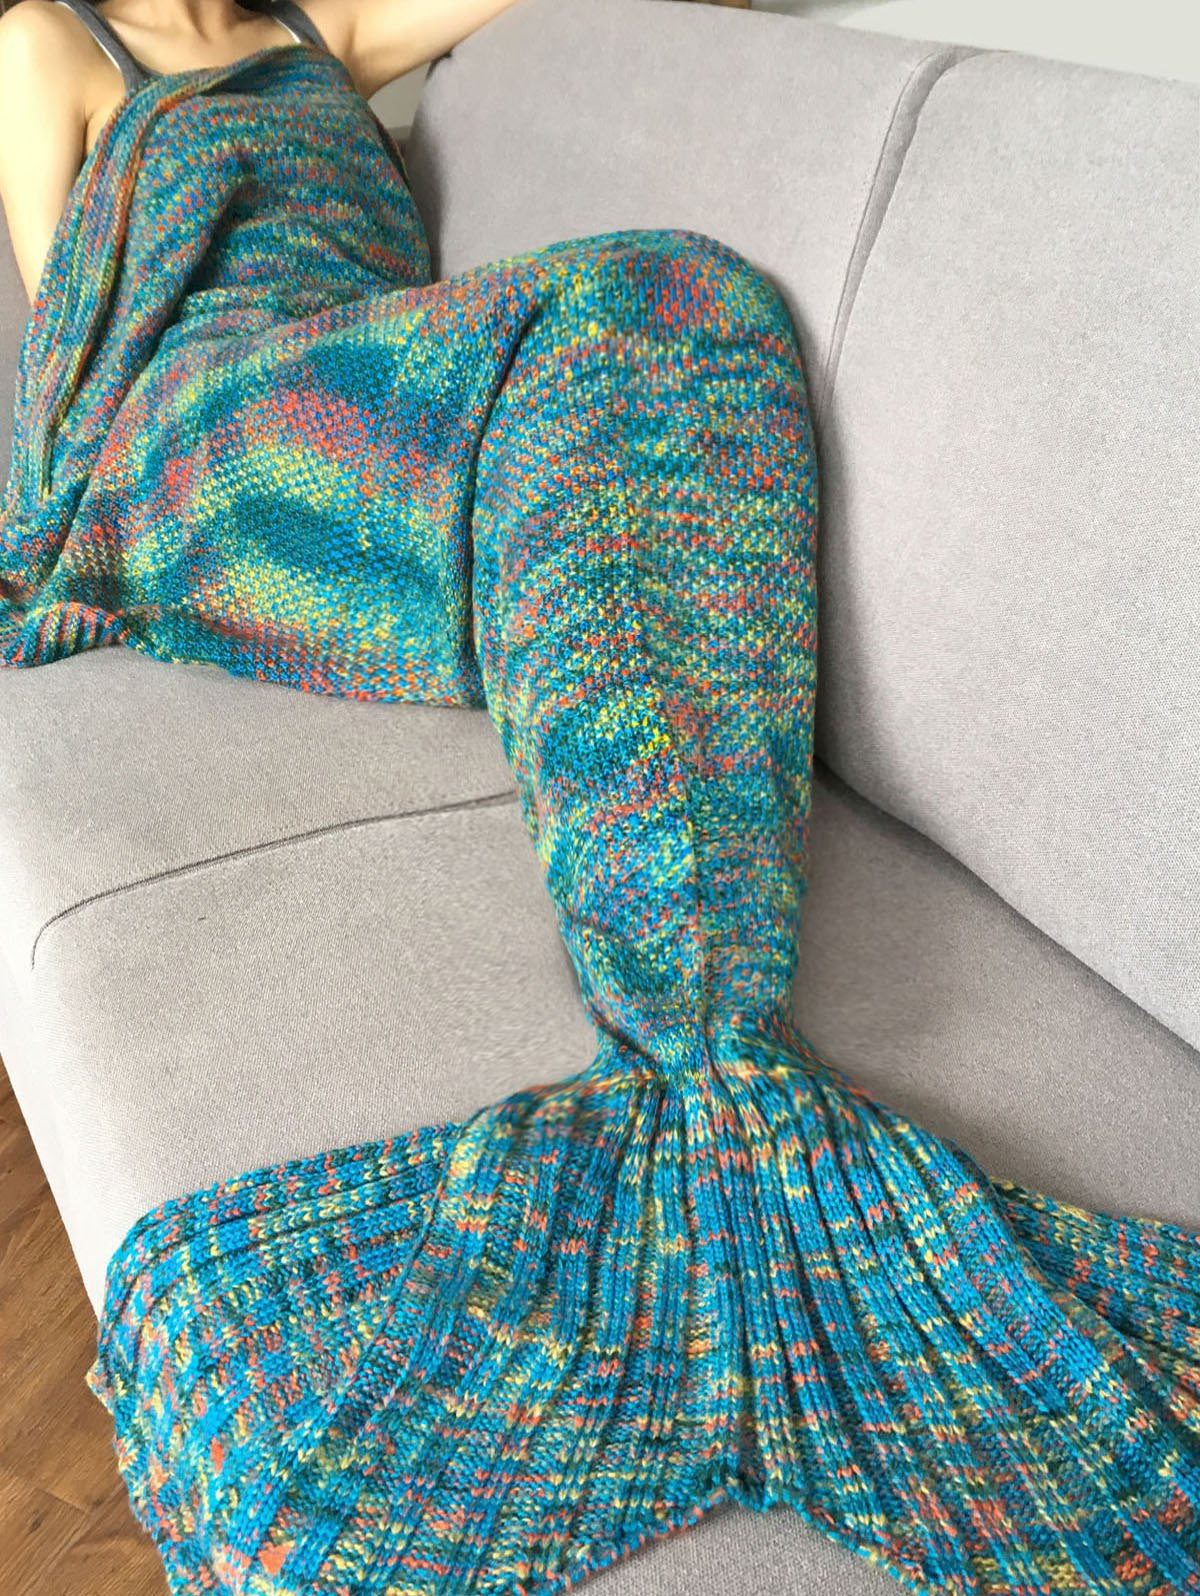 Crochet Mermaid Blanket Fresh Stylish Crochet Knitted Super soft Mermaid Tail Shape Of Unique 48 Images Crochet Mermaid Blanket